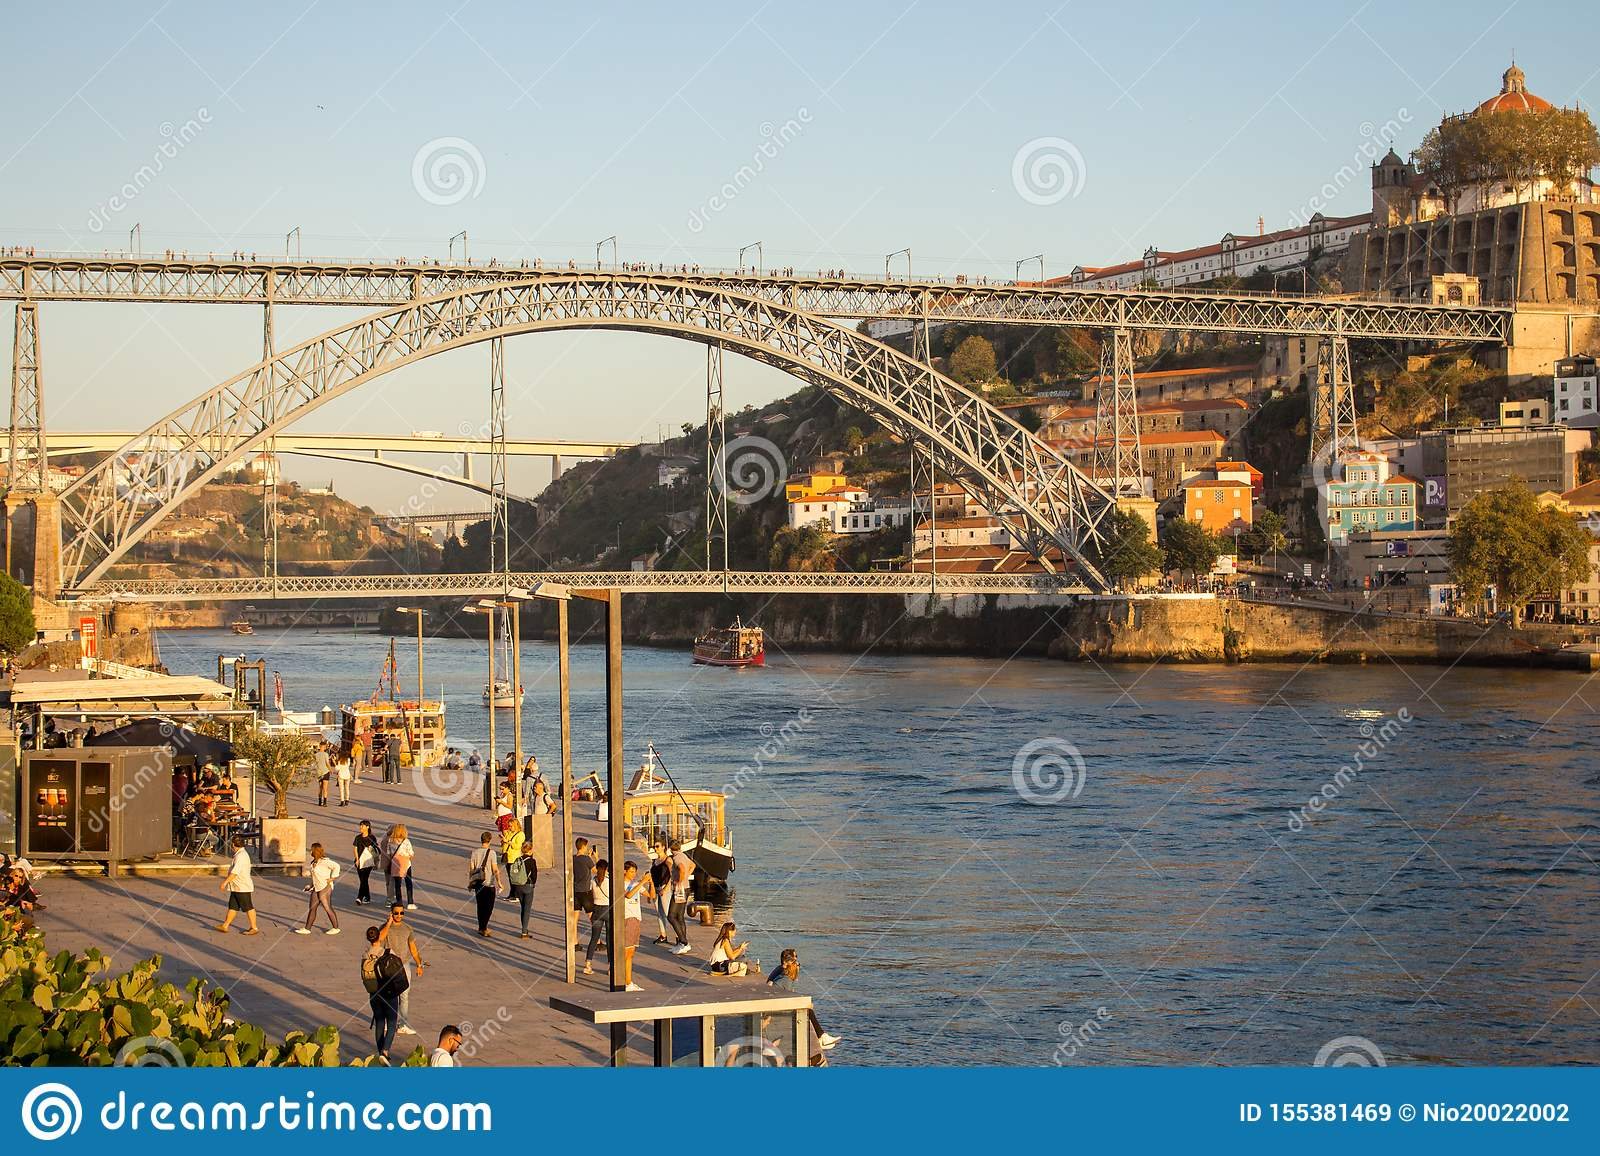 Famous bridge Ponte Luis in Porto bottom view. Riverside near giant steel bridge with people and boats.